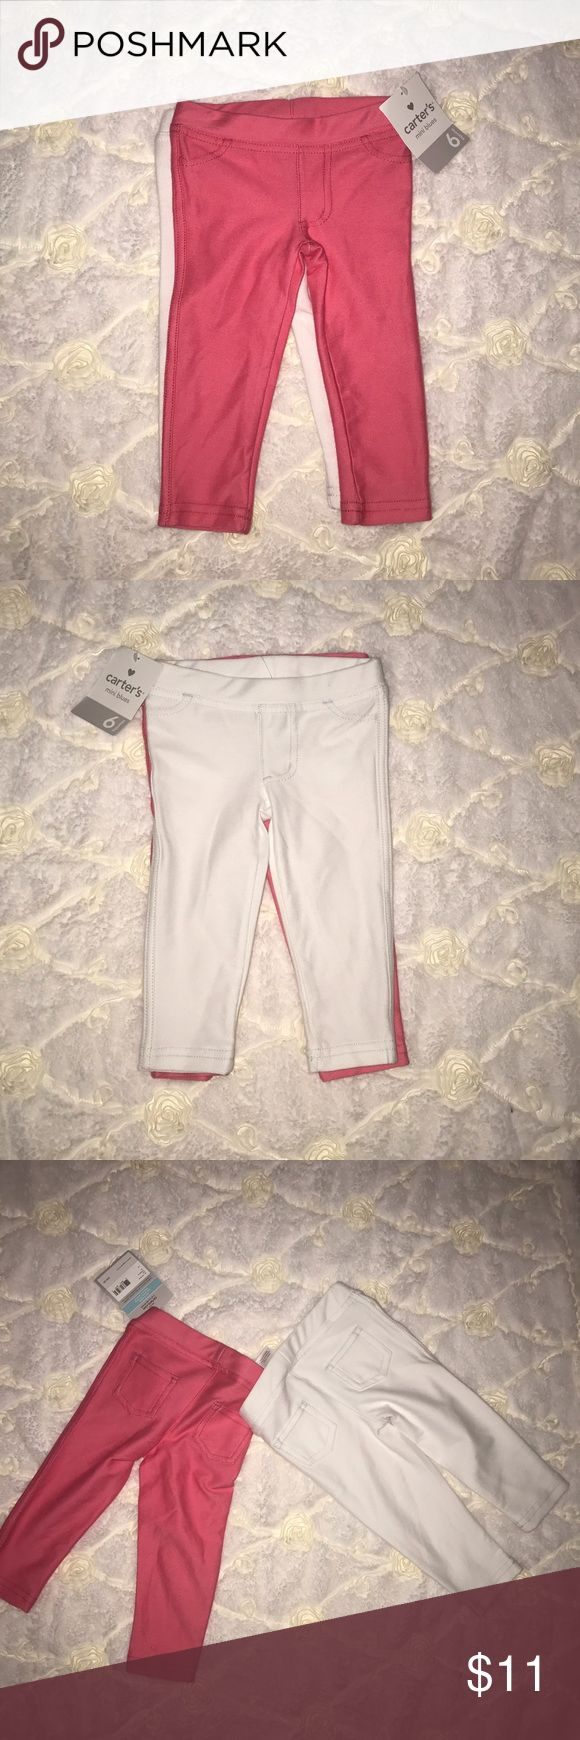 Hot Pink & White Jeggins Set **NEW WITH TAGS** Carter's Hot Pink & White Jeggins set w/ real pockets on the back. Carter's Bottoms Leggings